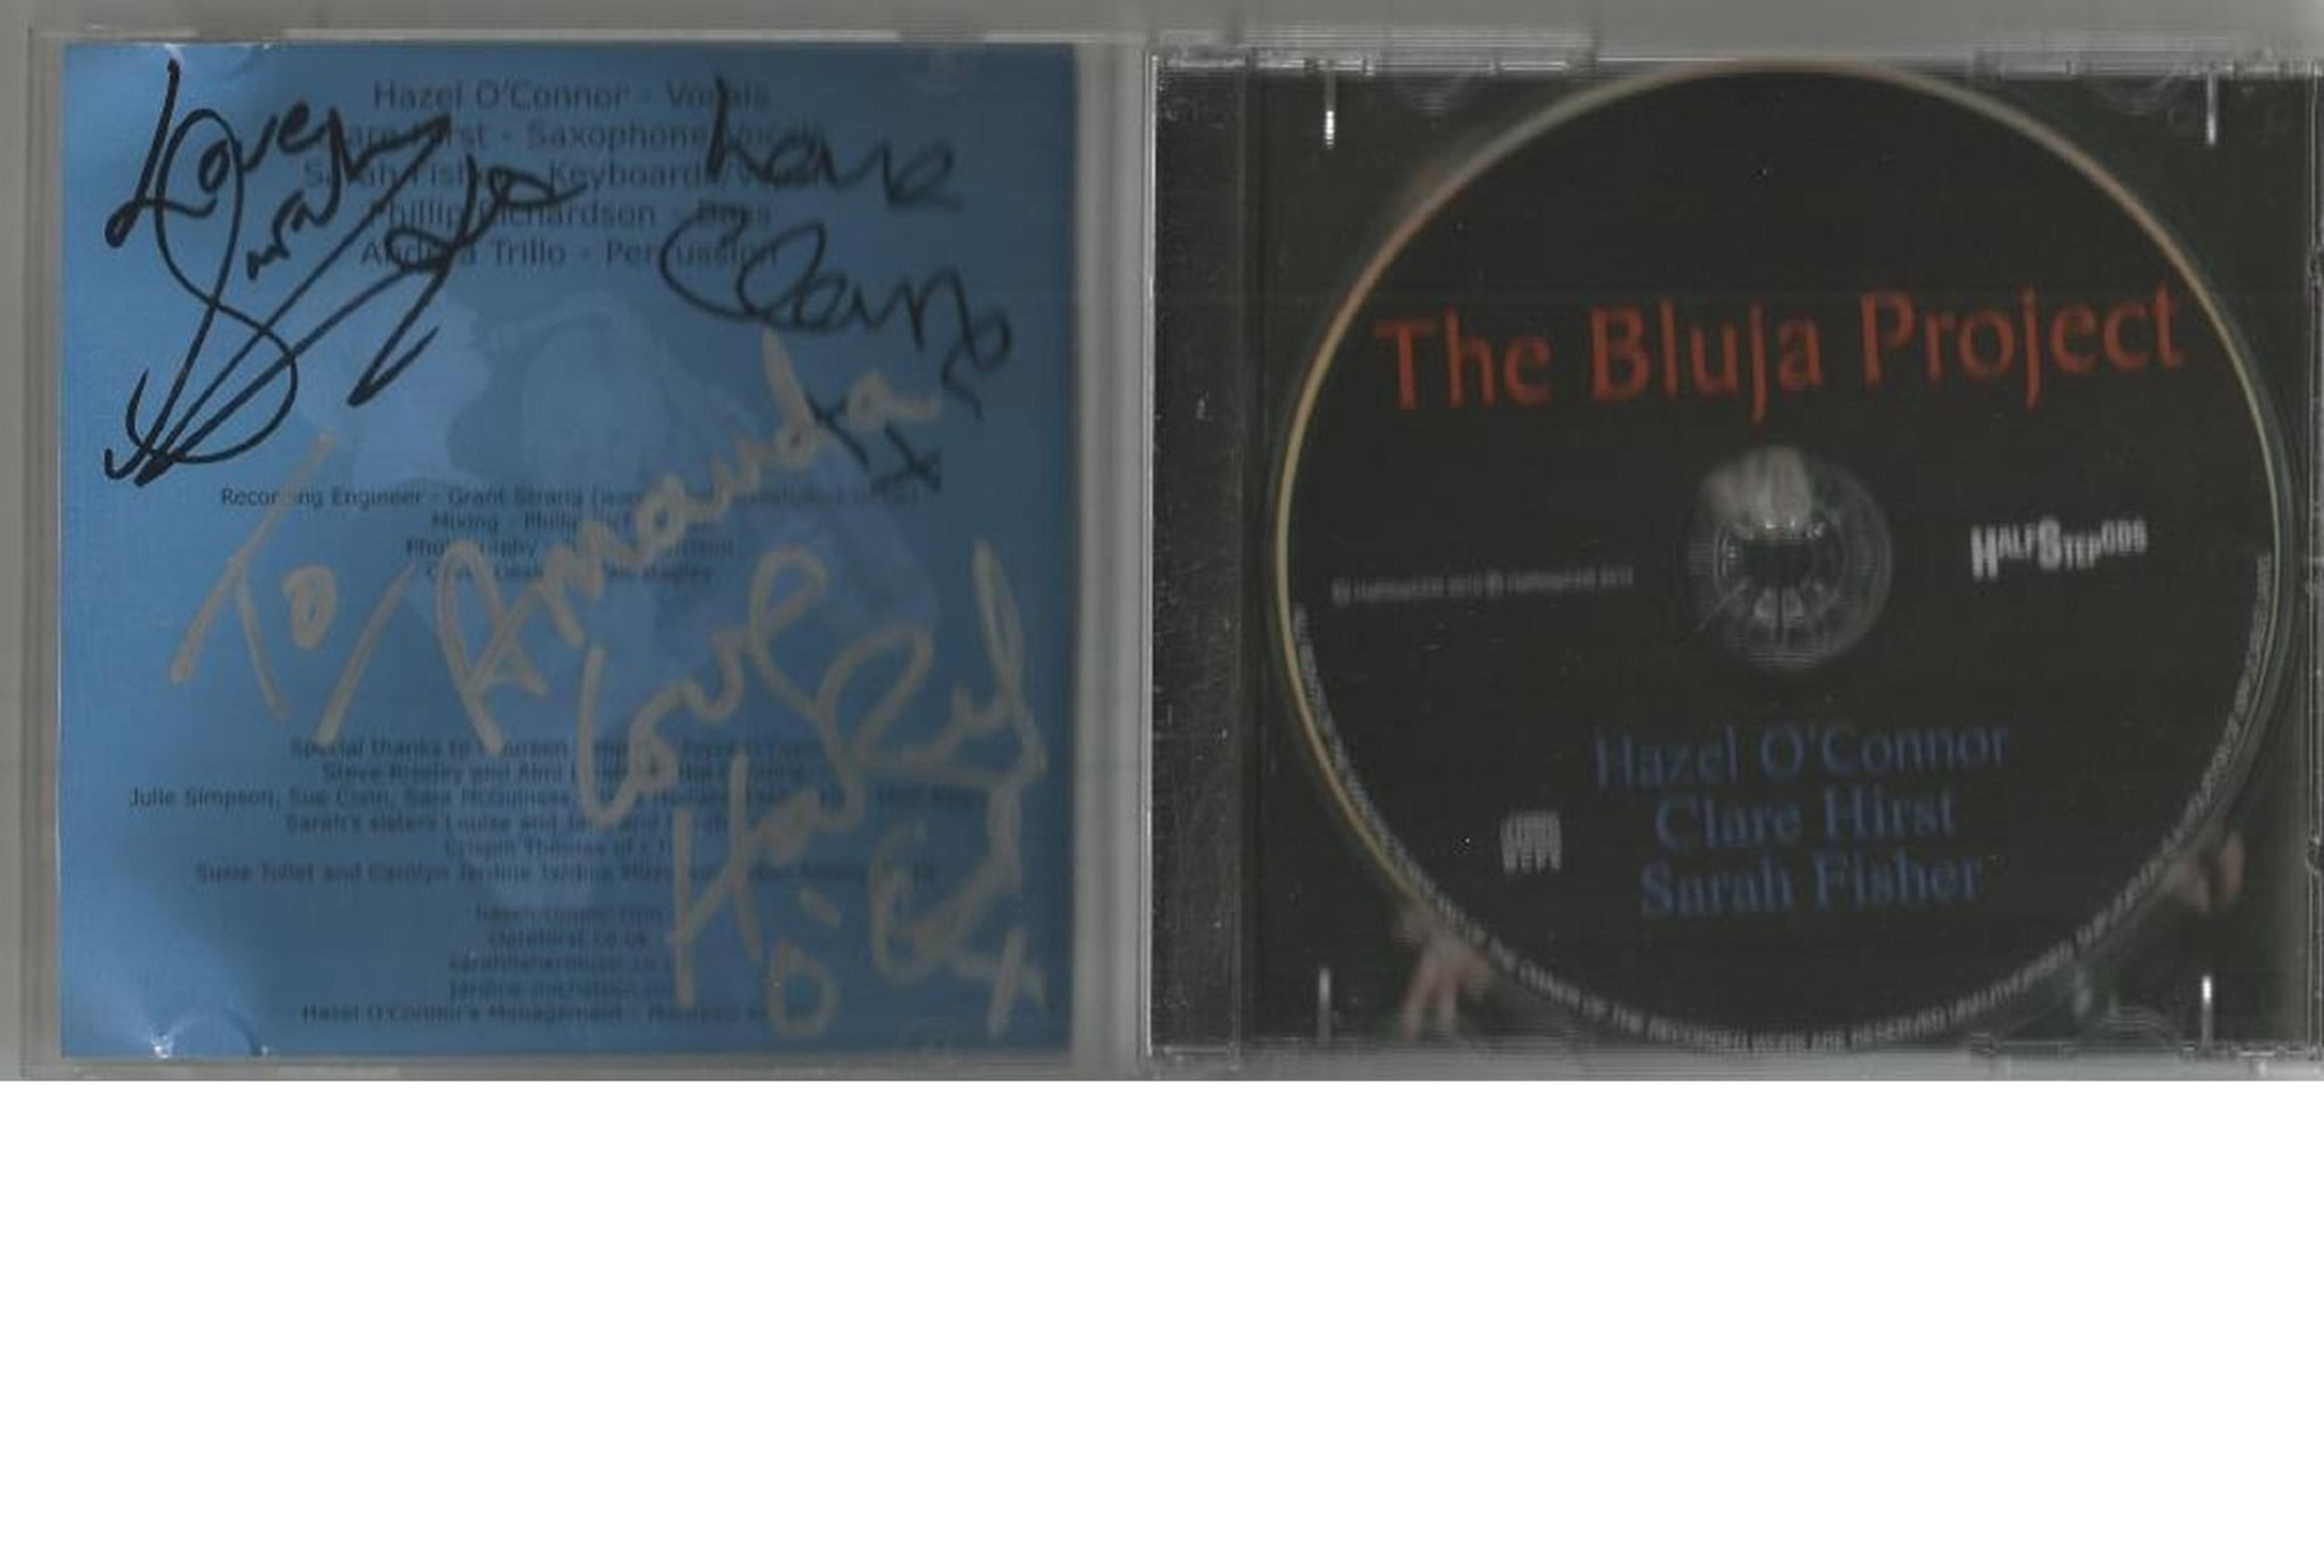 6 Signed CDs Including Michael Graham Inspirations Disc Included, Hazel O'Connor The Bluja Project - Image 4 of 5